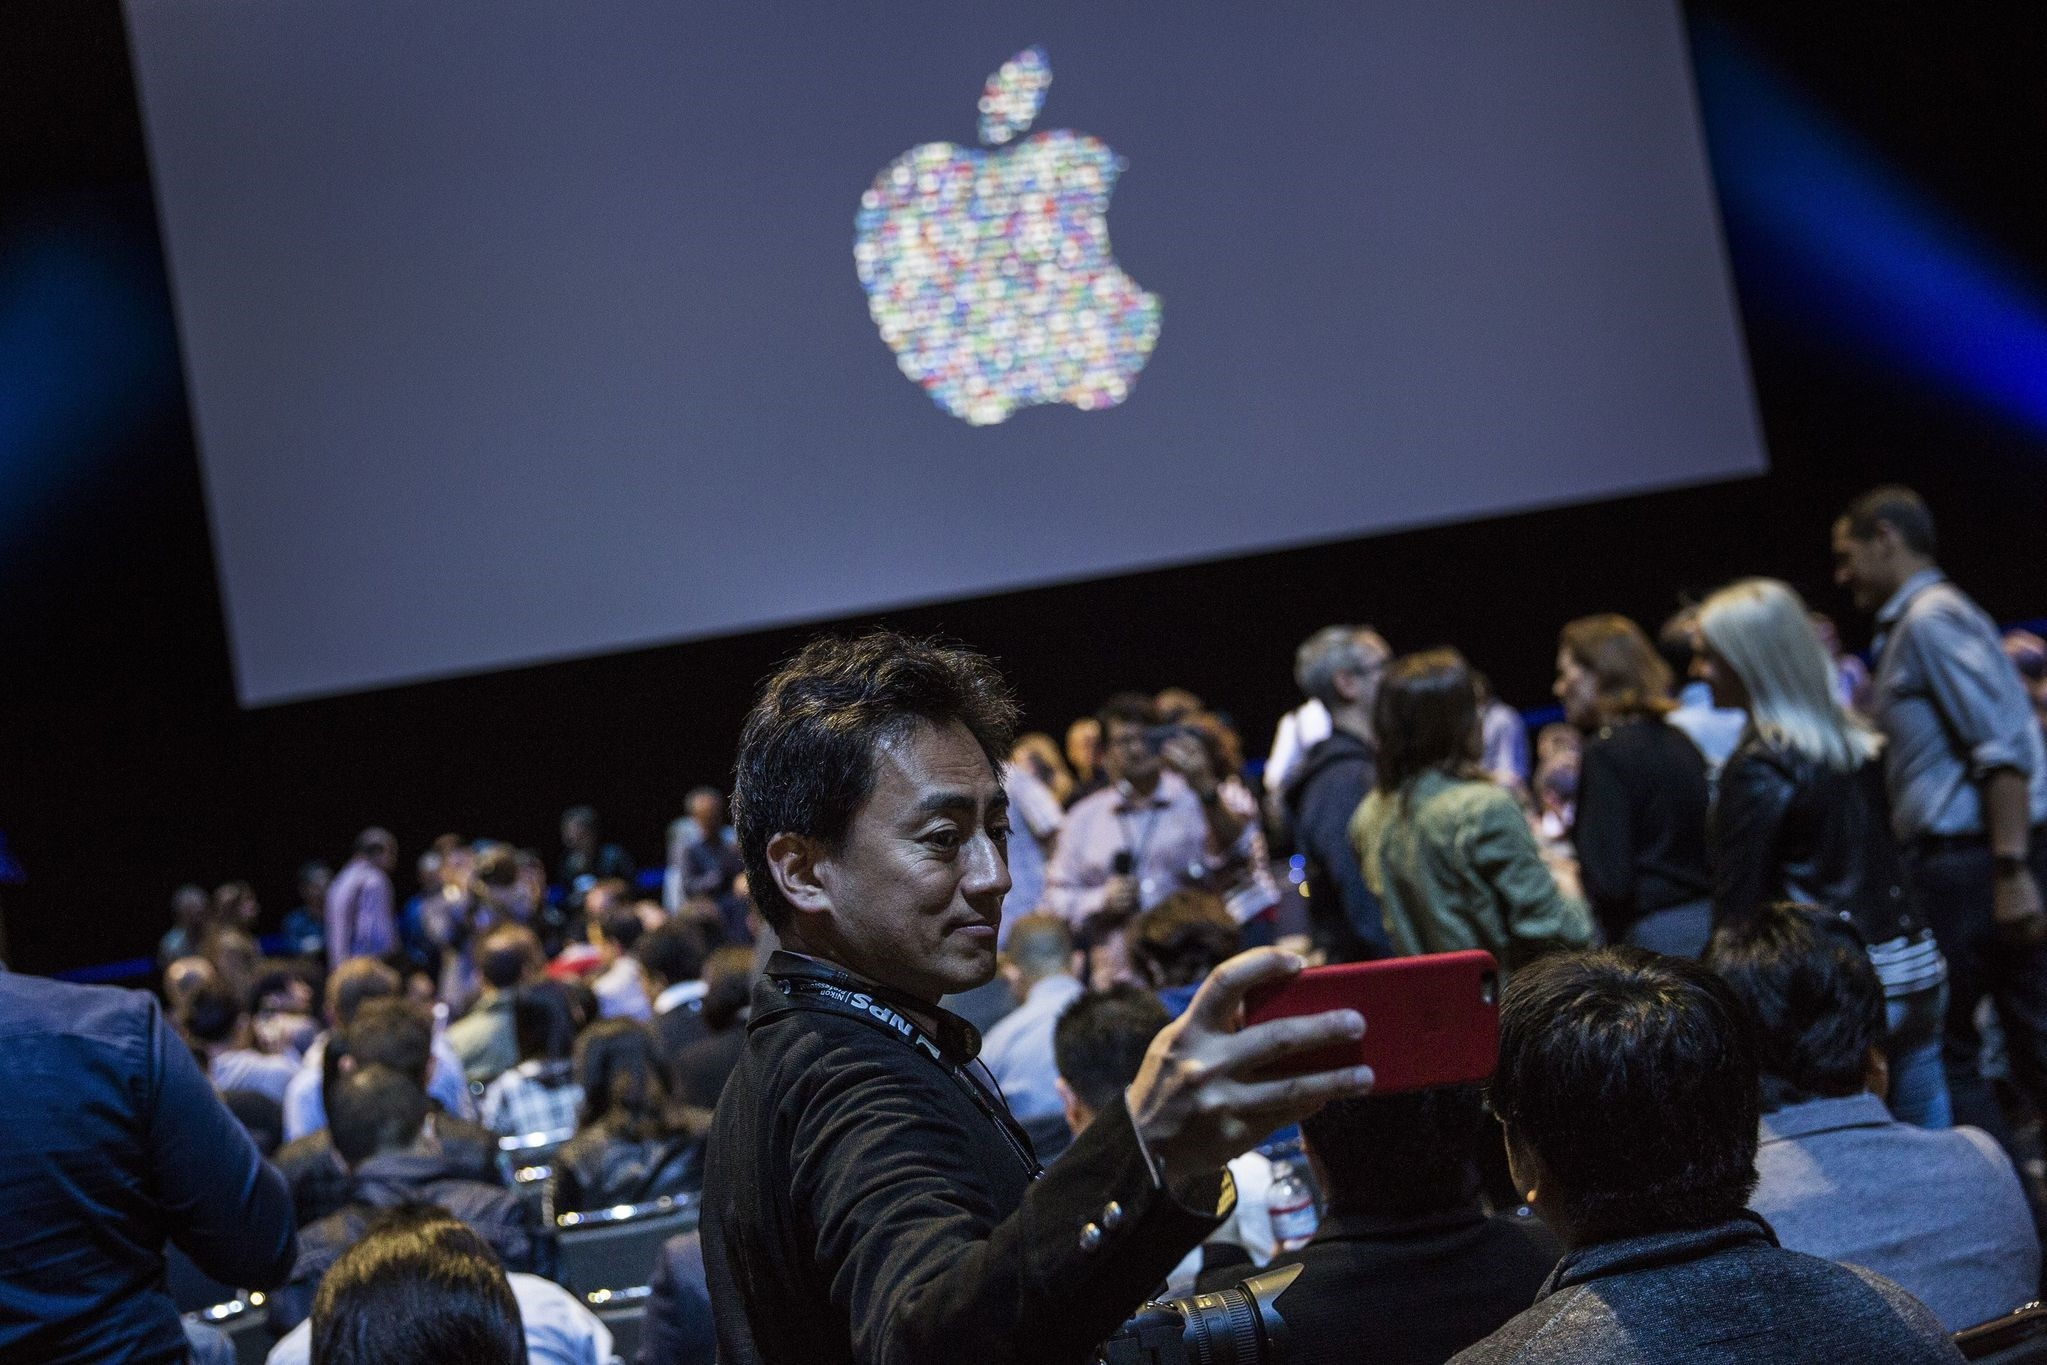 A man takes a selfie while waiting for the start of an Apple event at the Worldwide Developer's Conference on June 13, 2016 in San Francisco, California. (AFP Photo)